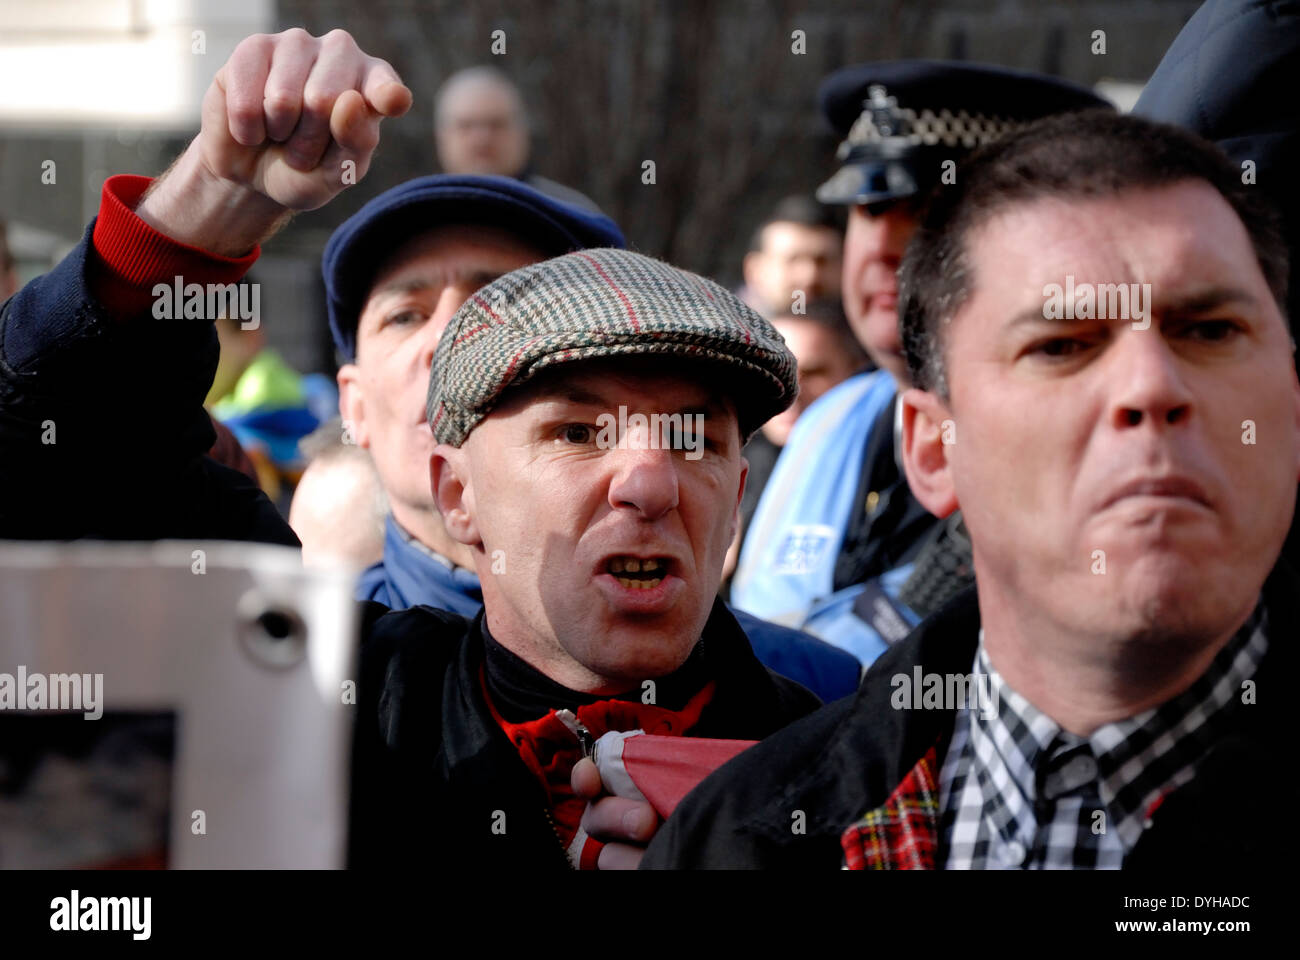 Lee Rigby Murder Trial Sentencing - Old Bailey 26 Feb. Right-wing groups campaigning for re-introduction of the death penalty - Stock Image